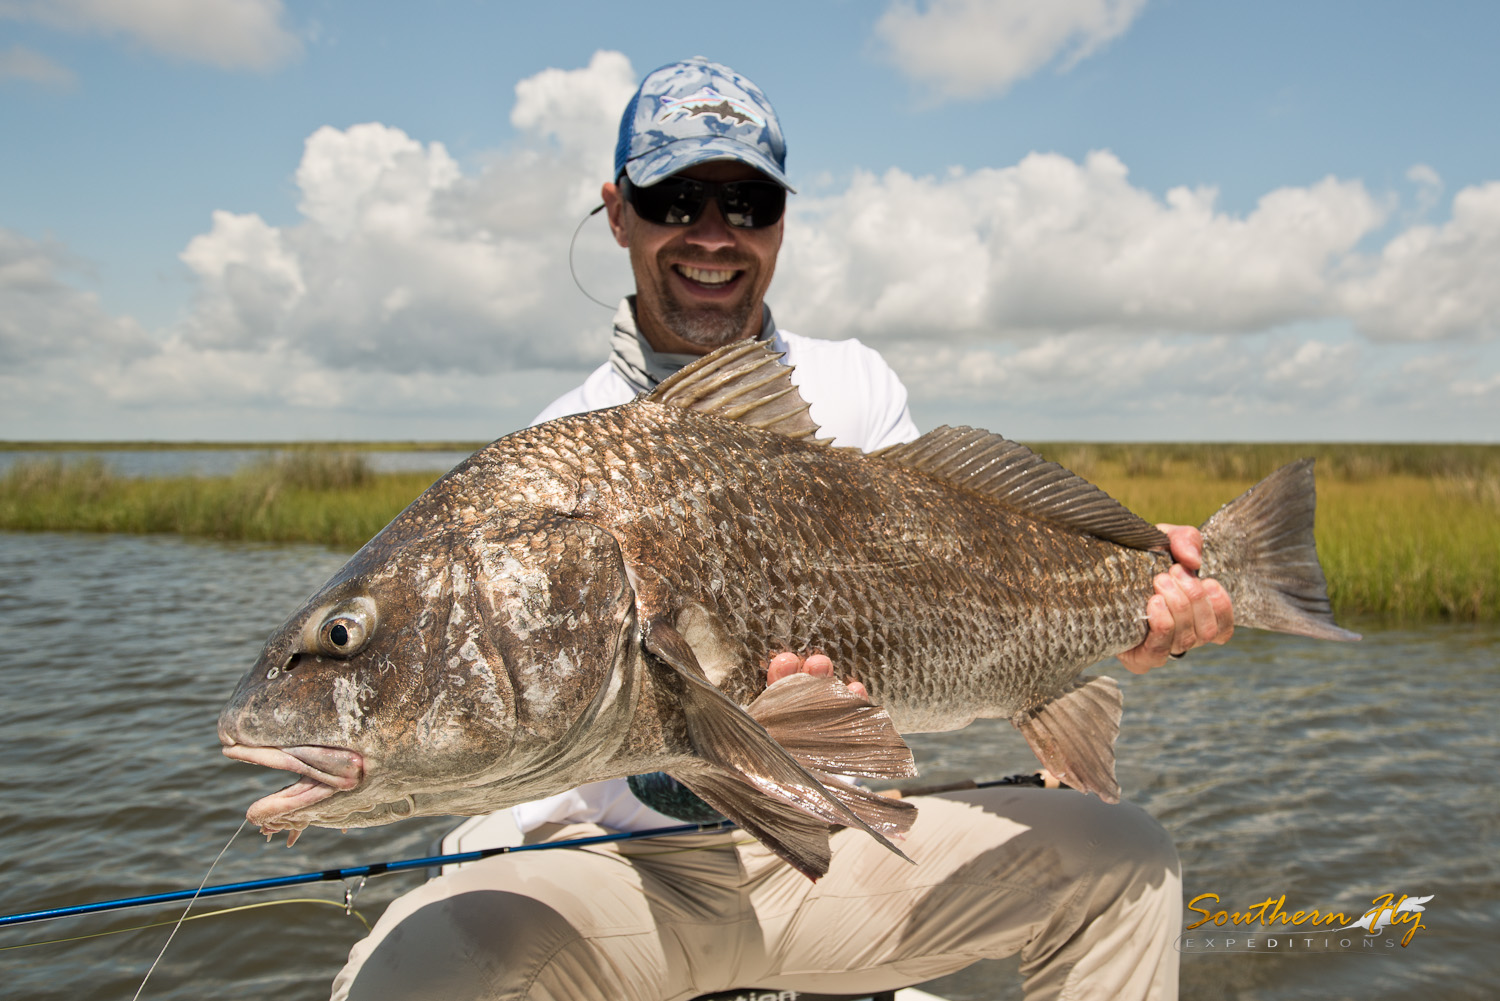 2019-06-29-07-01_SouthernFlyExpeditions_NewOrleans_DanWilcoxAndBrentByquist_Yellowdog-4.jpg